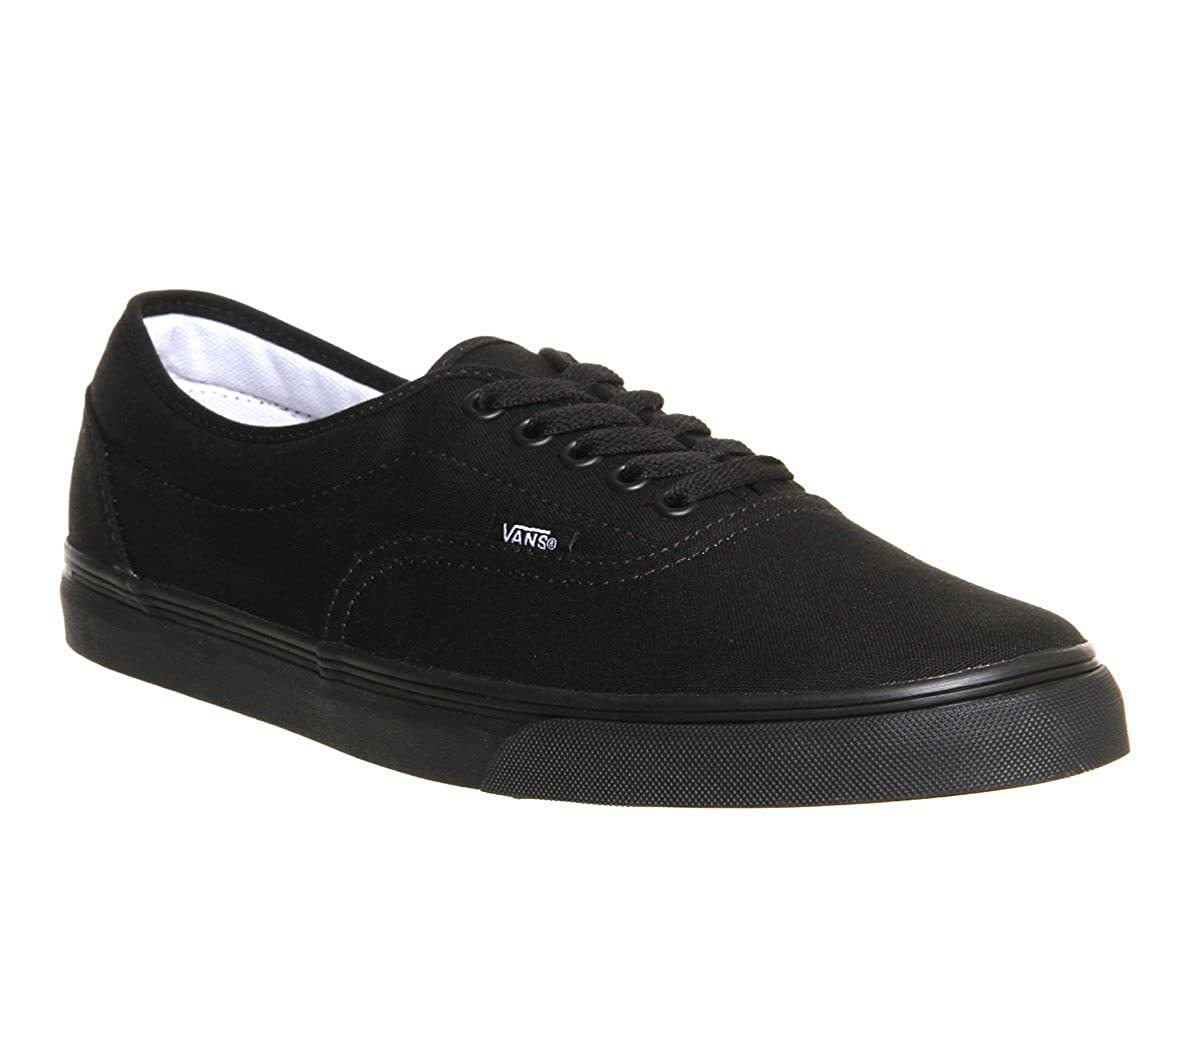 d0377233e1 Vans Lpe Black - 6.5 UK  Amazon.co.uk  Shoes   Bags